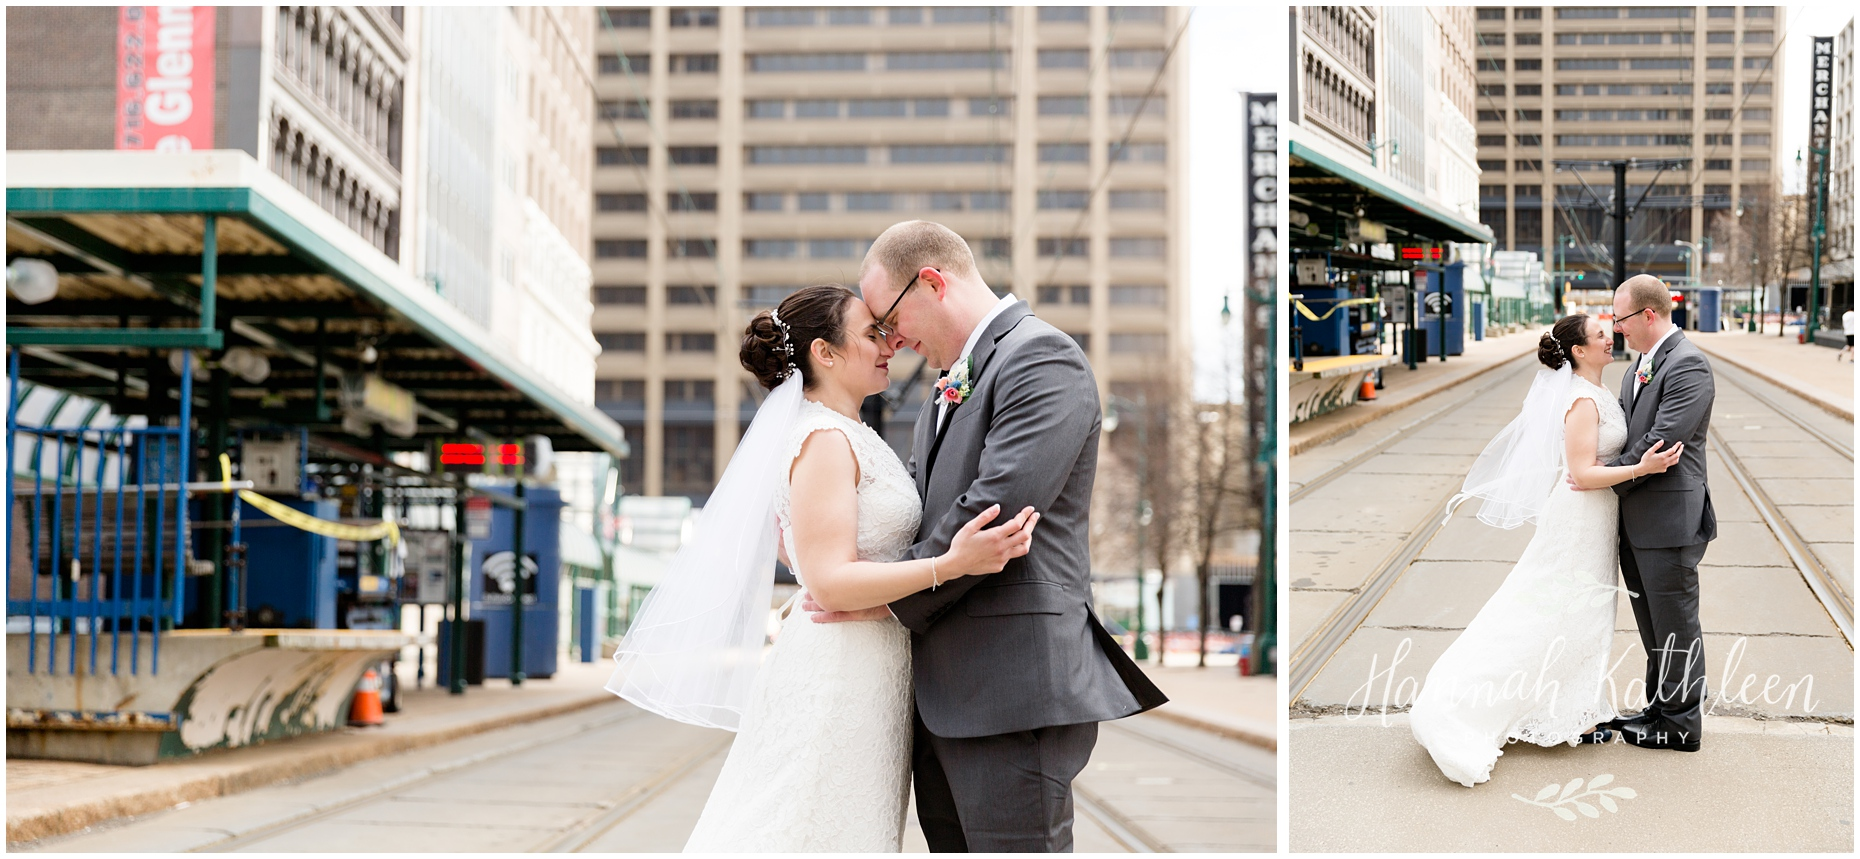 Chris_Janet_downtown_Buffalo_NY_Wedding_Photography